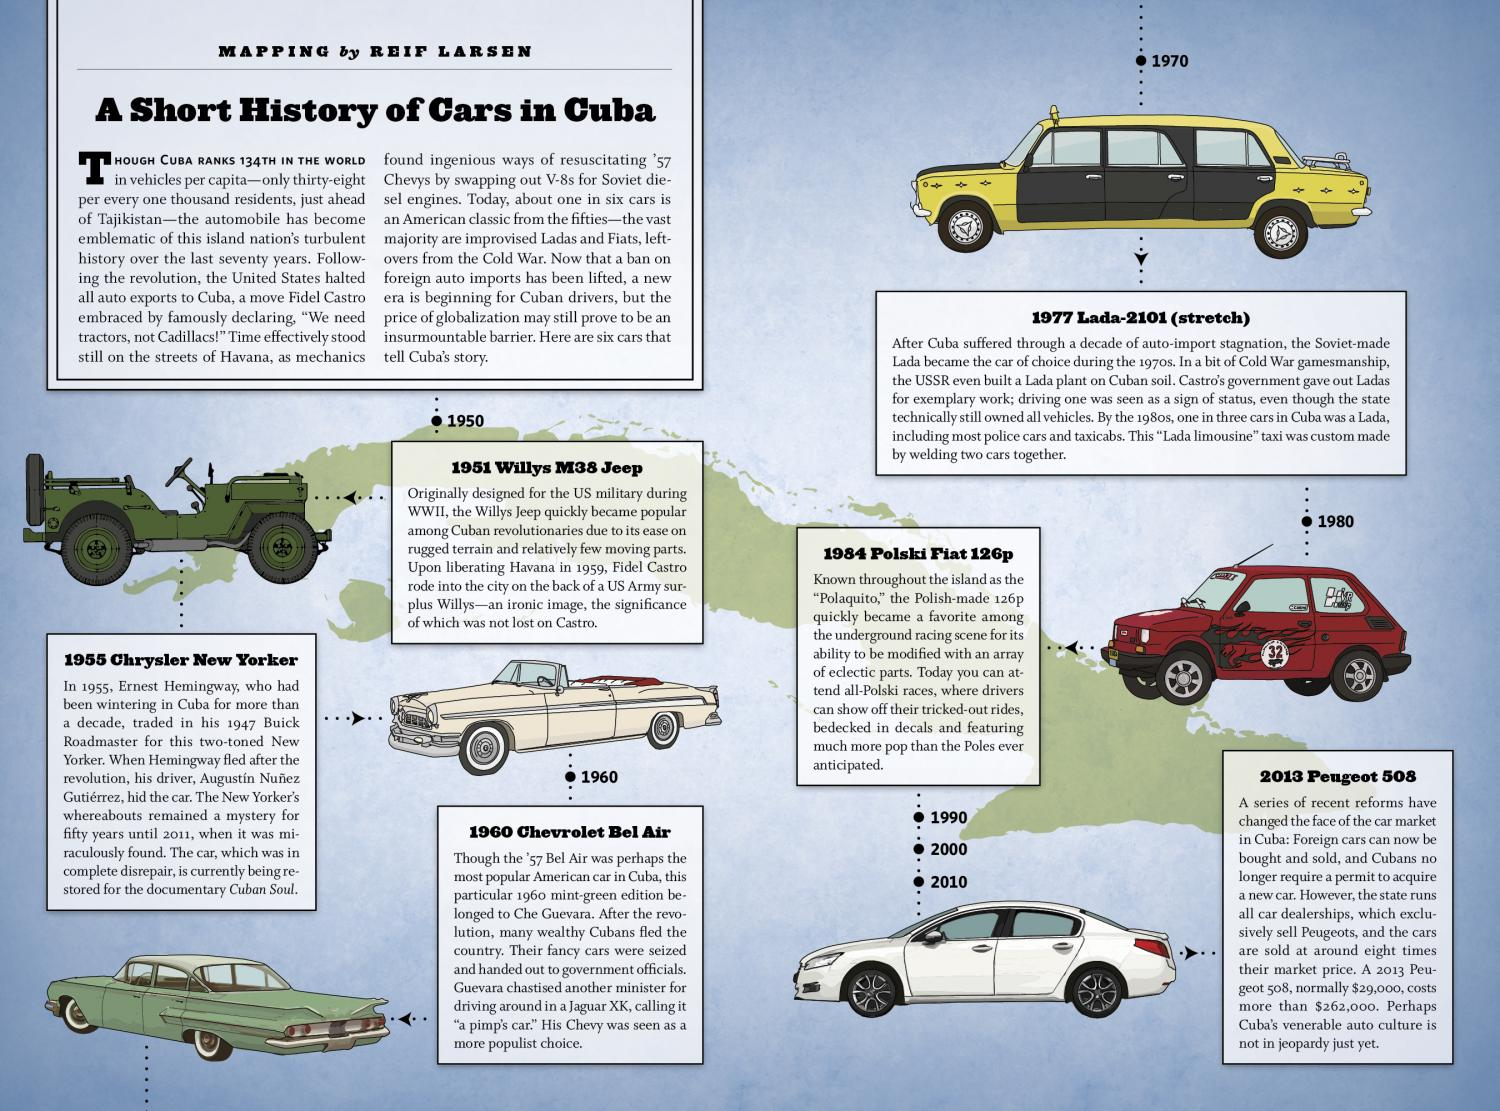 Mapping A Short History Of Cars In Cuba Vqr Online 1960 Willys Jeep For Sale Used By Reif Larsen